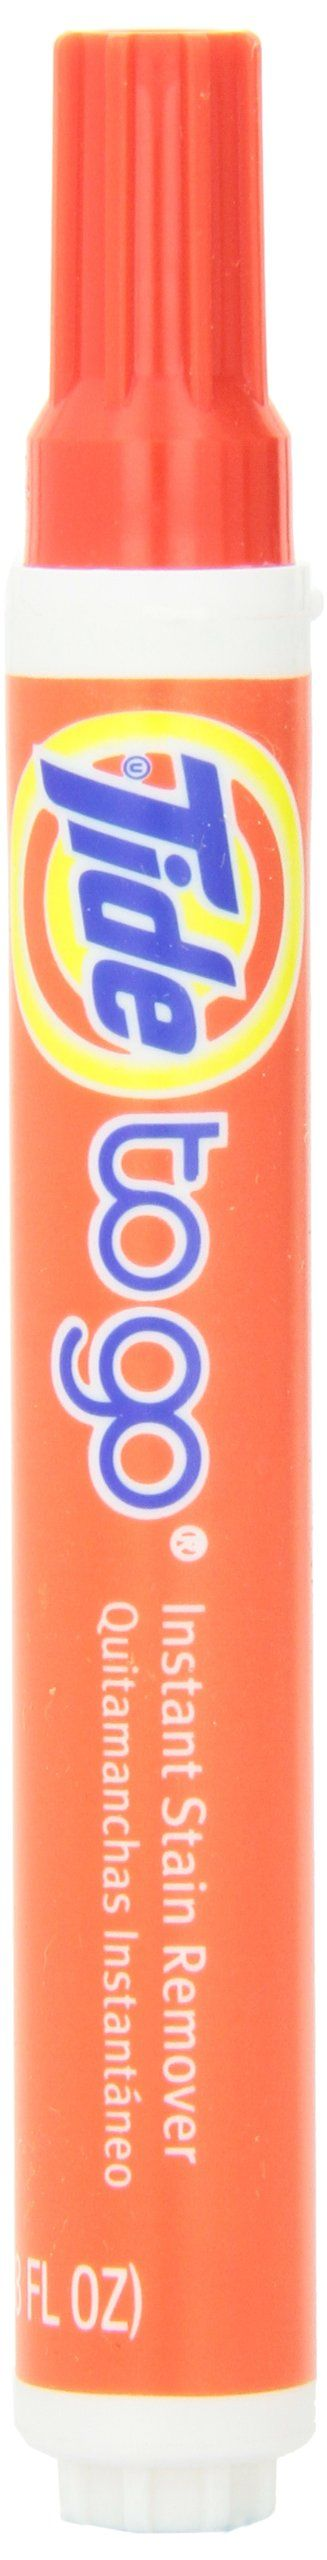 Tide To Go Instant Stain Remover Liquid 10ml 3 Count